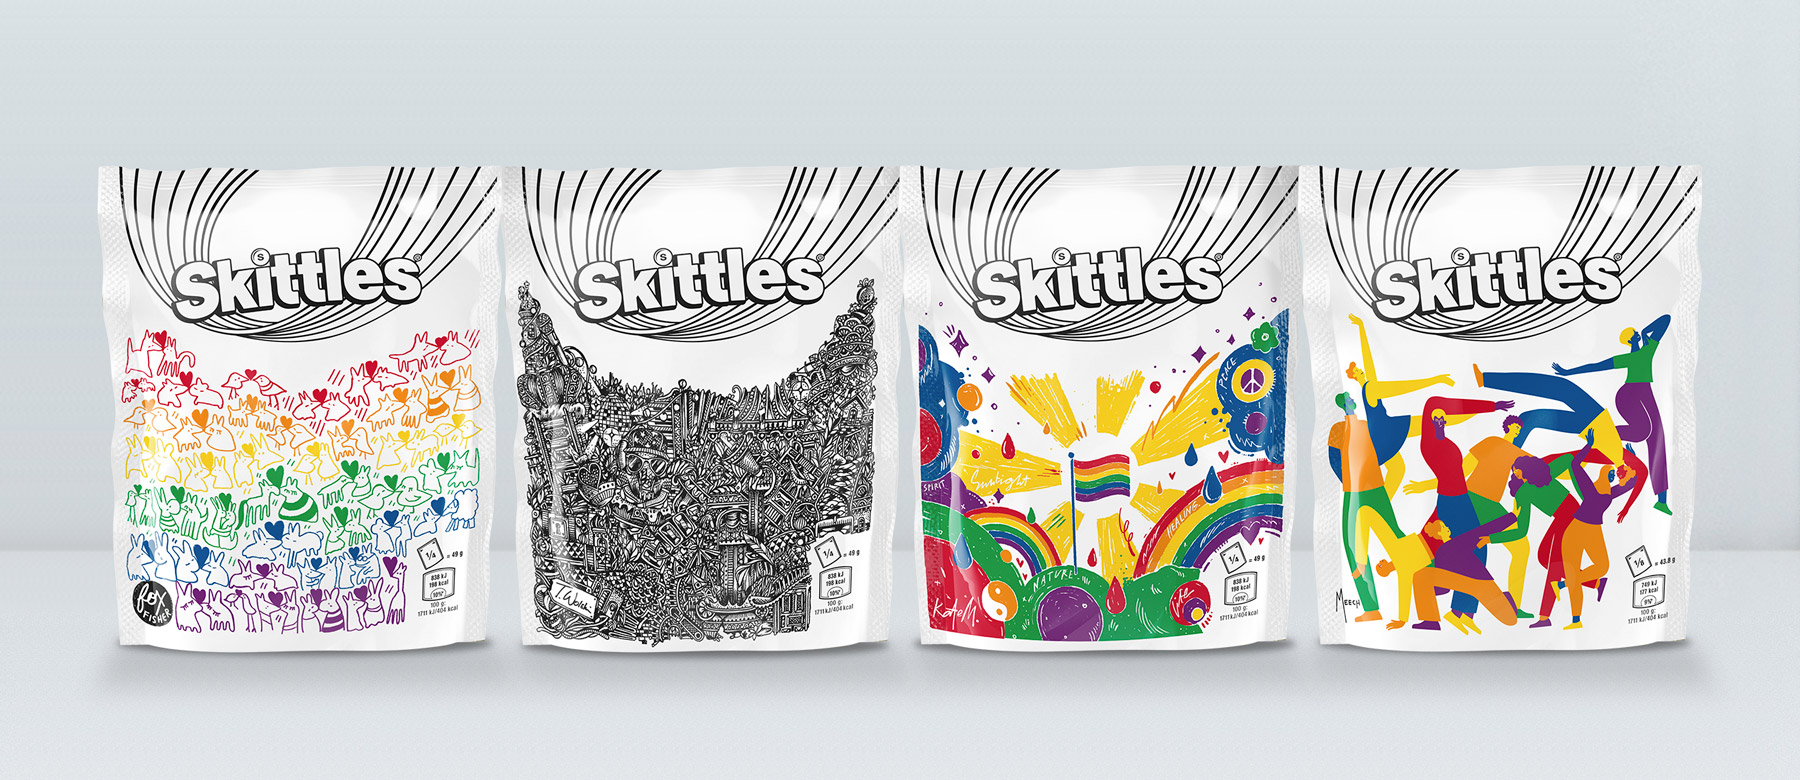 Straight Forward Skittles Pride 2019 Limited edition packaging: Packaging Design Range